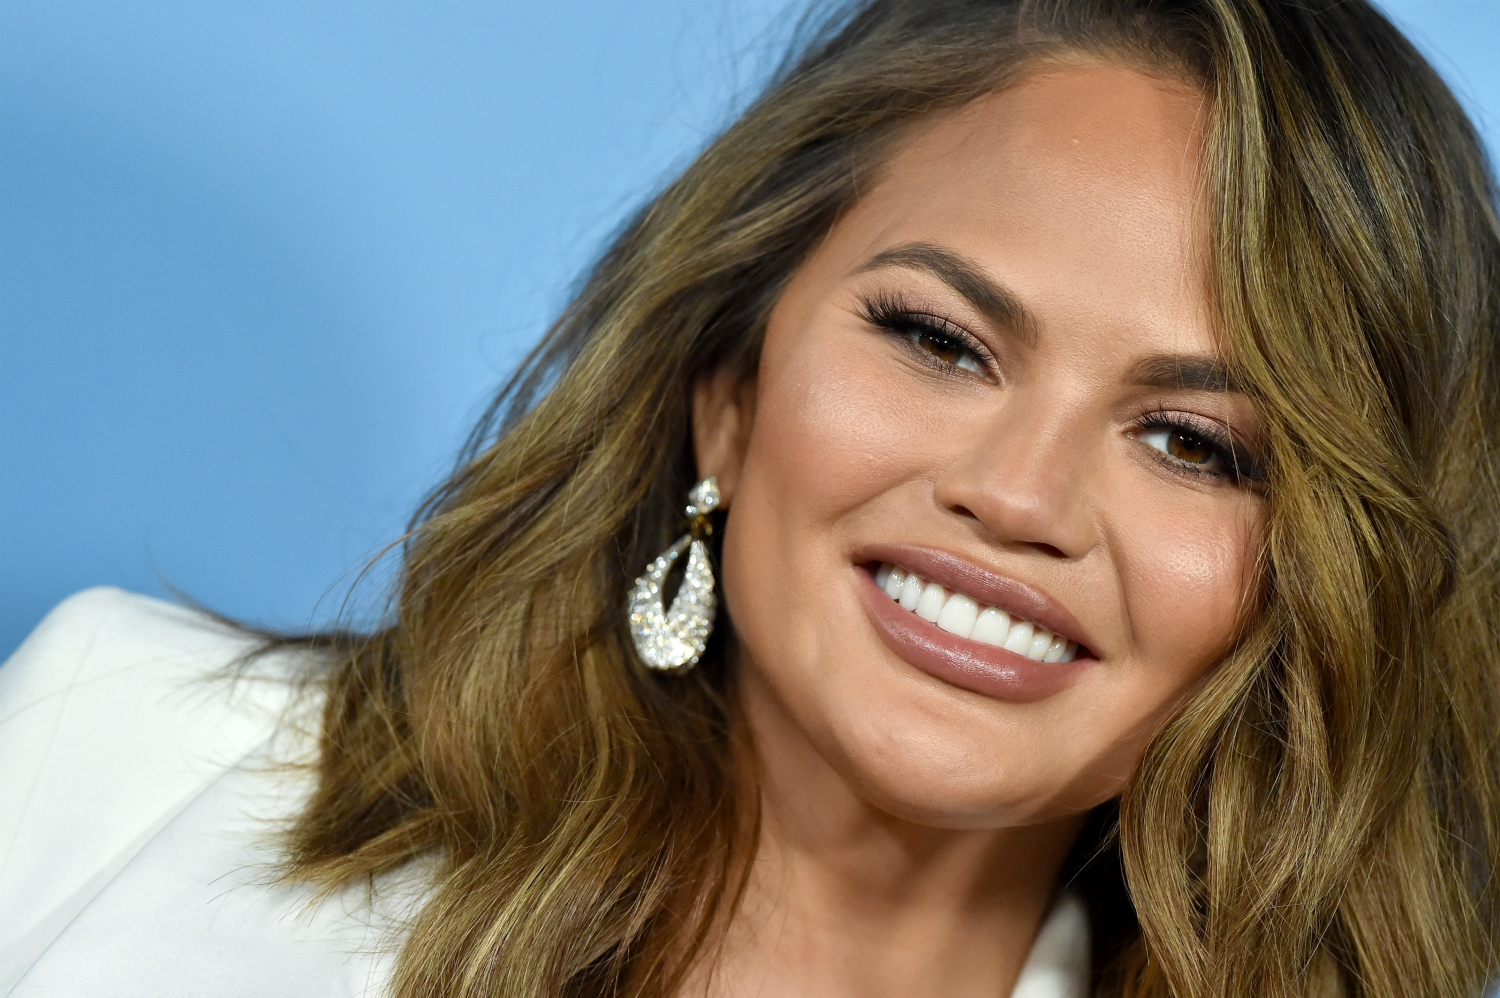 chrissy-teigen-deletes-her-twitteraccount-after-admitting-it-no-longerserved-her-positively